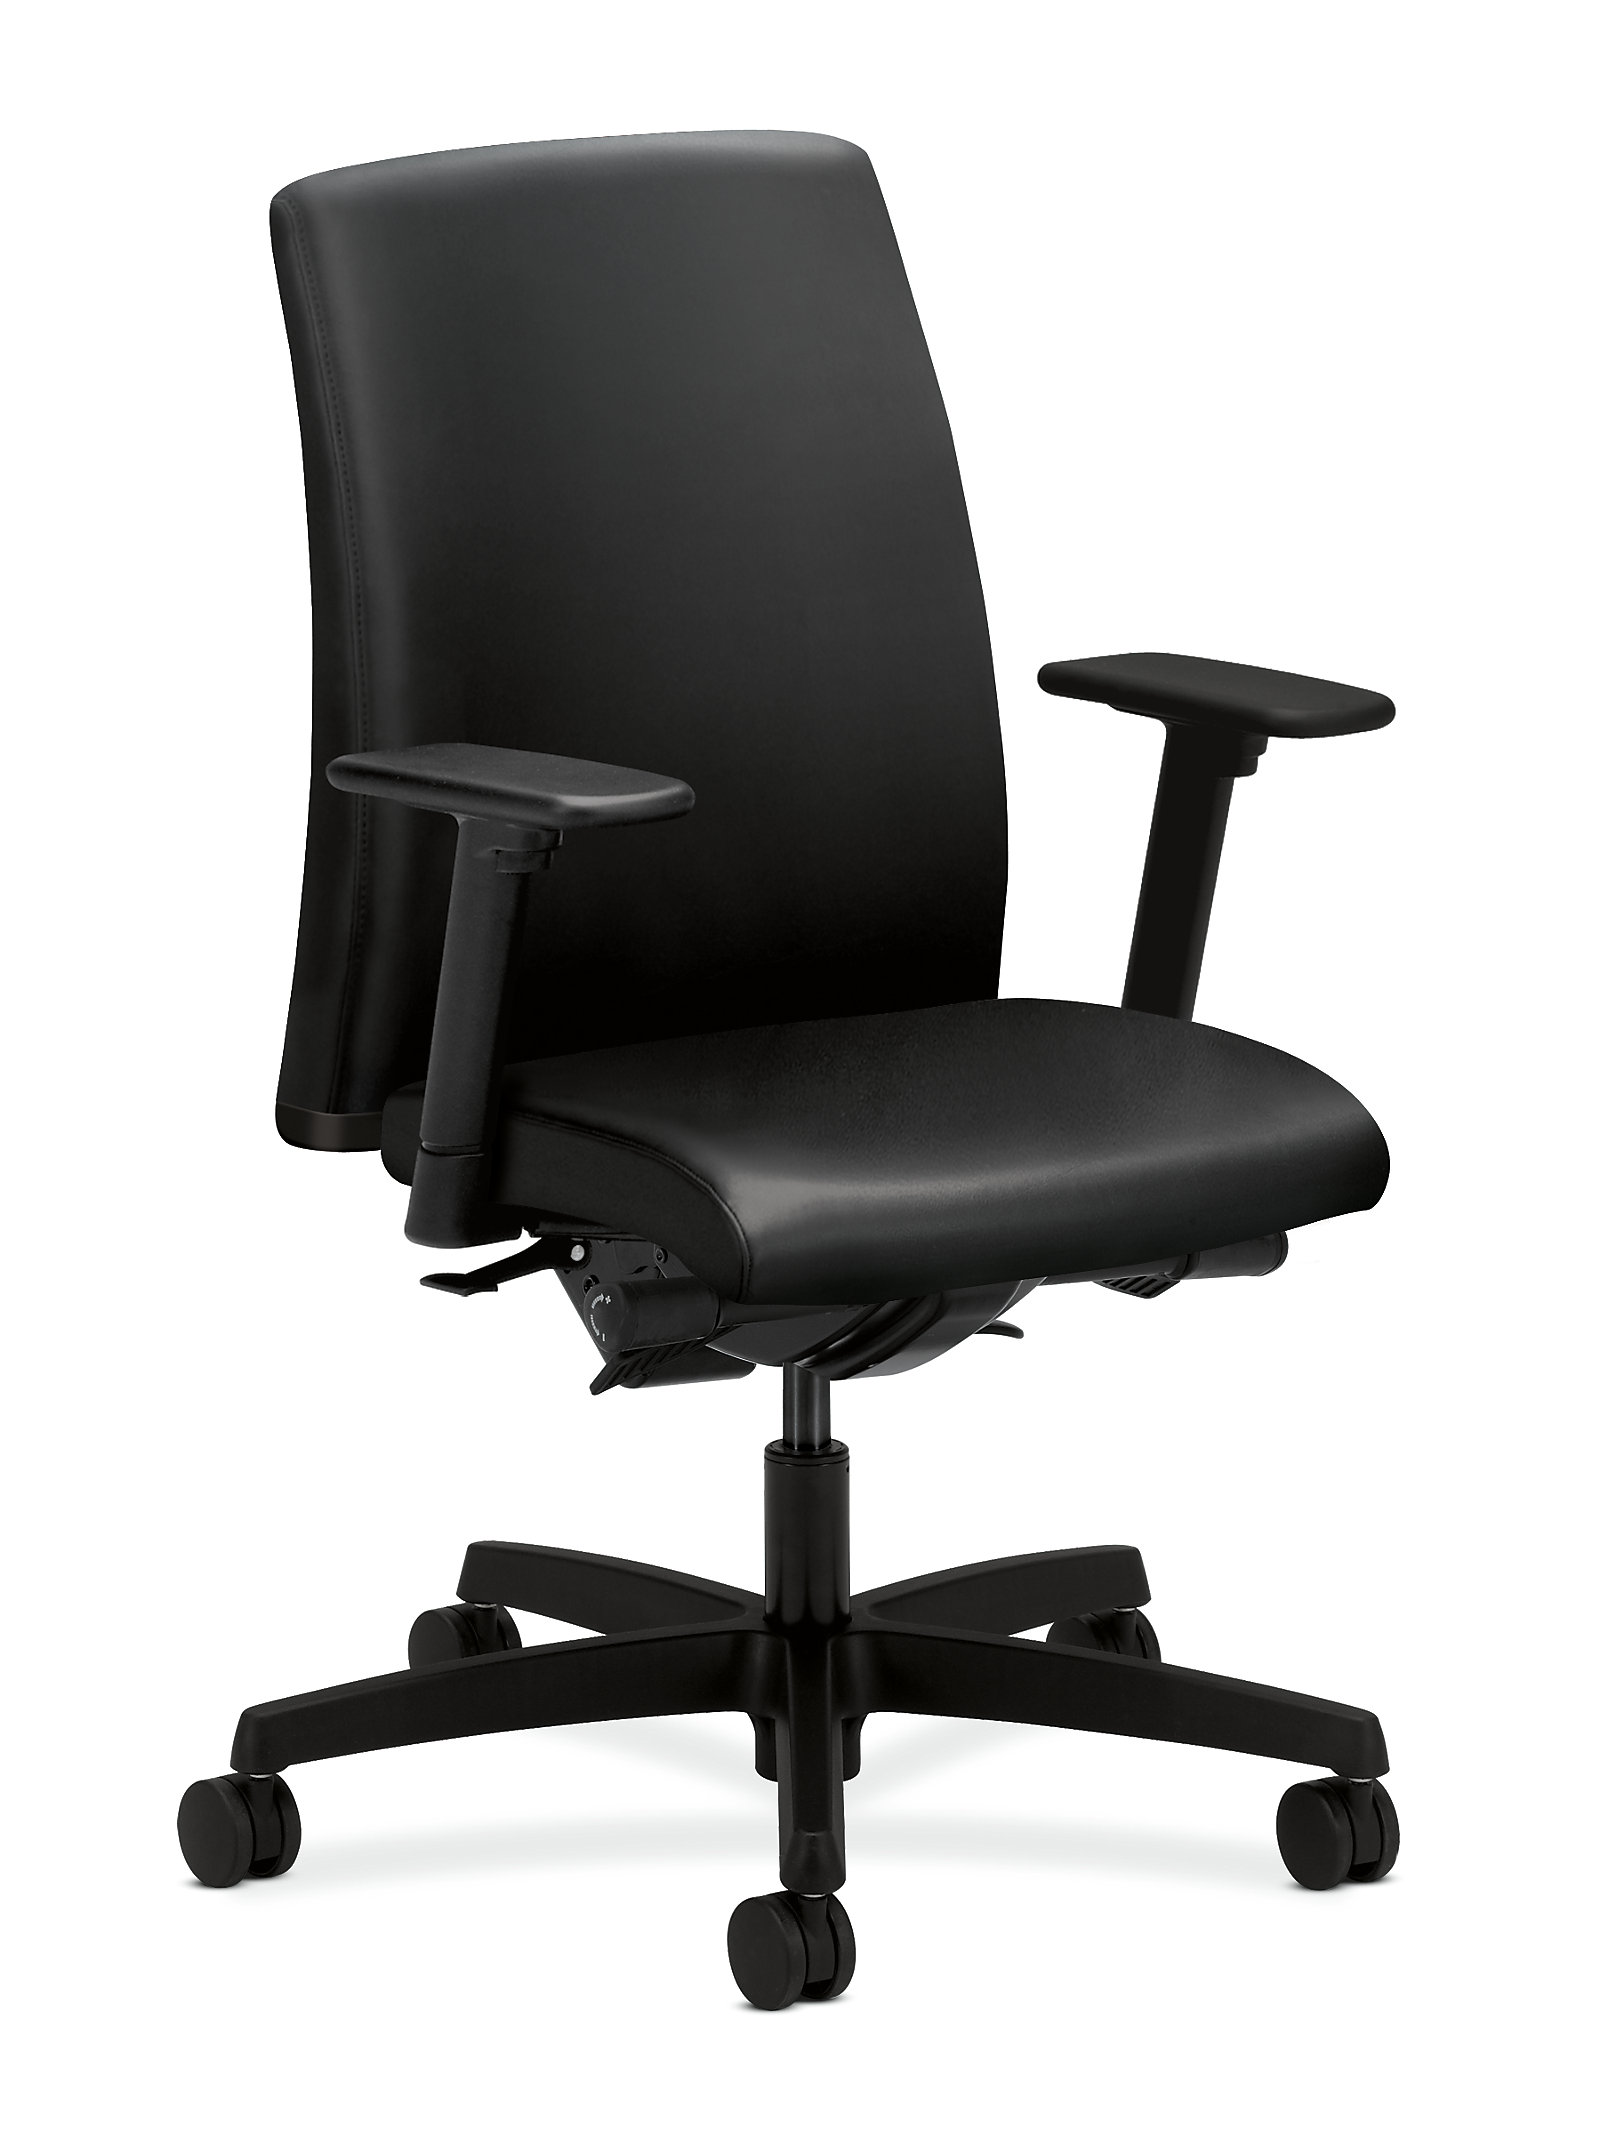 chairs back view product hon mid office ignition ergonomic chair nucleus shop task